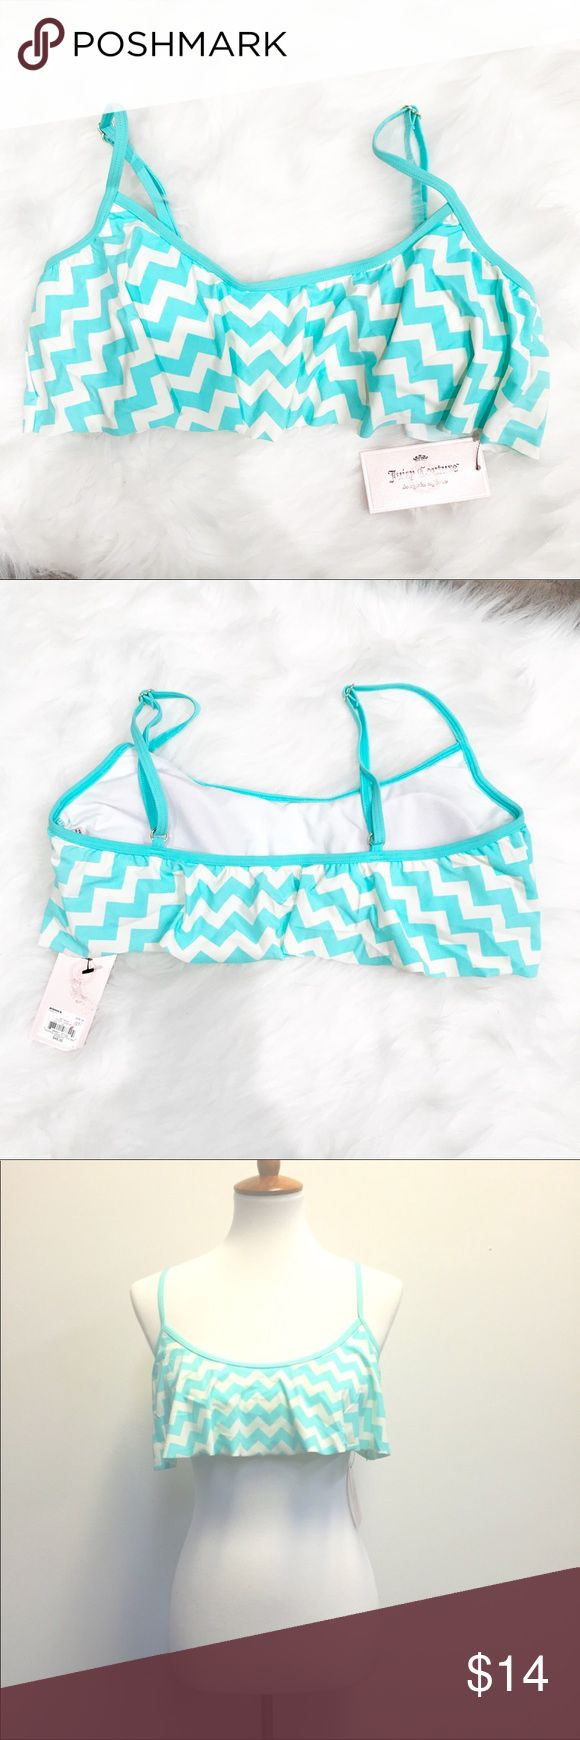 Juicy Couture Chevron Flounce Bikini Top Chic and stylish flouncy chevron bikini top from Juicy Couture. Adjustable spaghetti straps with gold hardware. Pull over the head style. Removable cups. The color is turquoise and ivory. New with tags, never worn. Smoke and pet free home. Juicy Couture Swim Bikinis